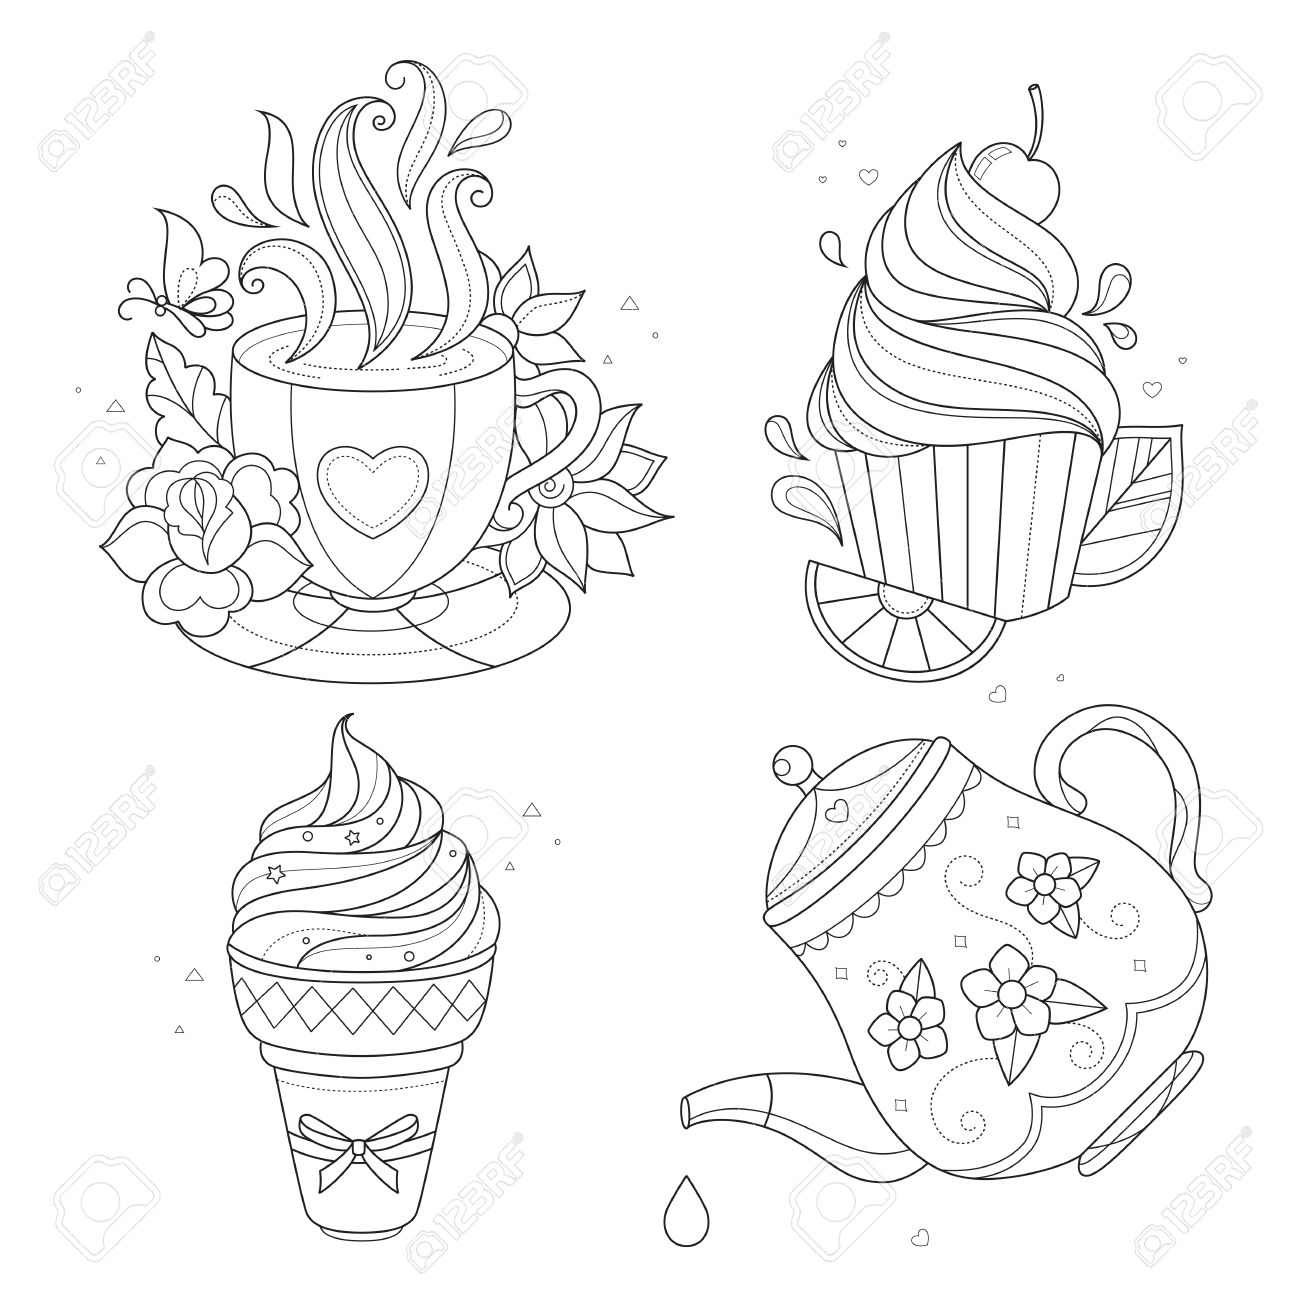 1300x1300 Coloring Page Set. Cupcake, Ice Cream, Tea Pot, Tea Cup